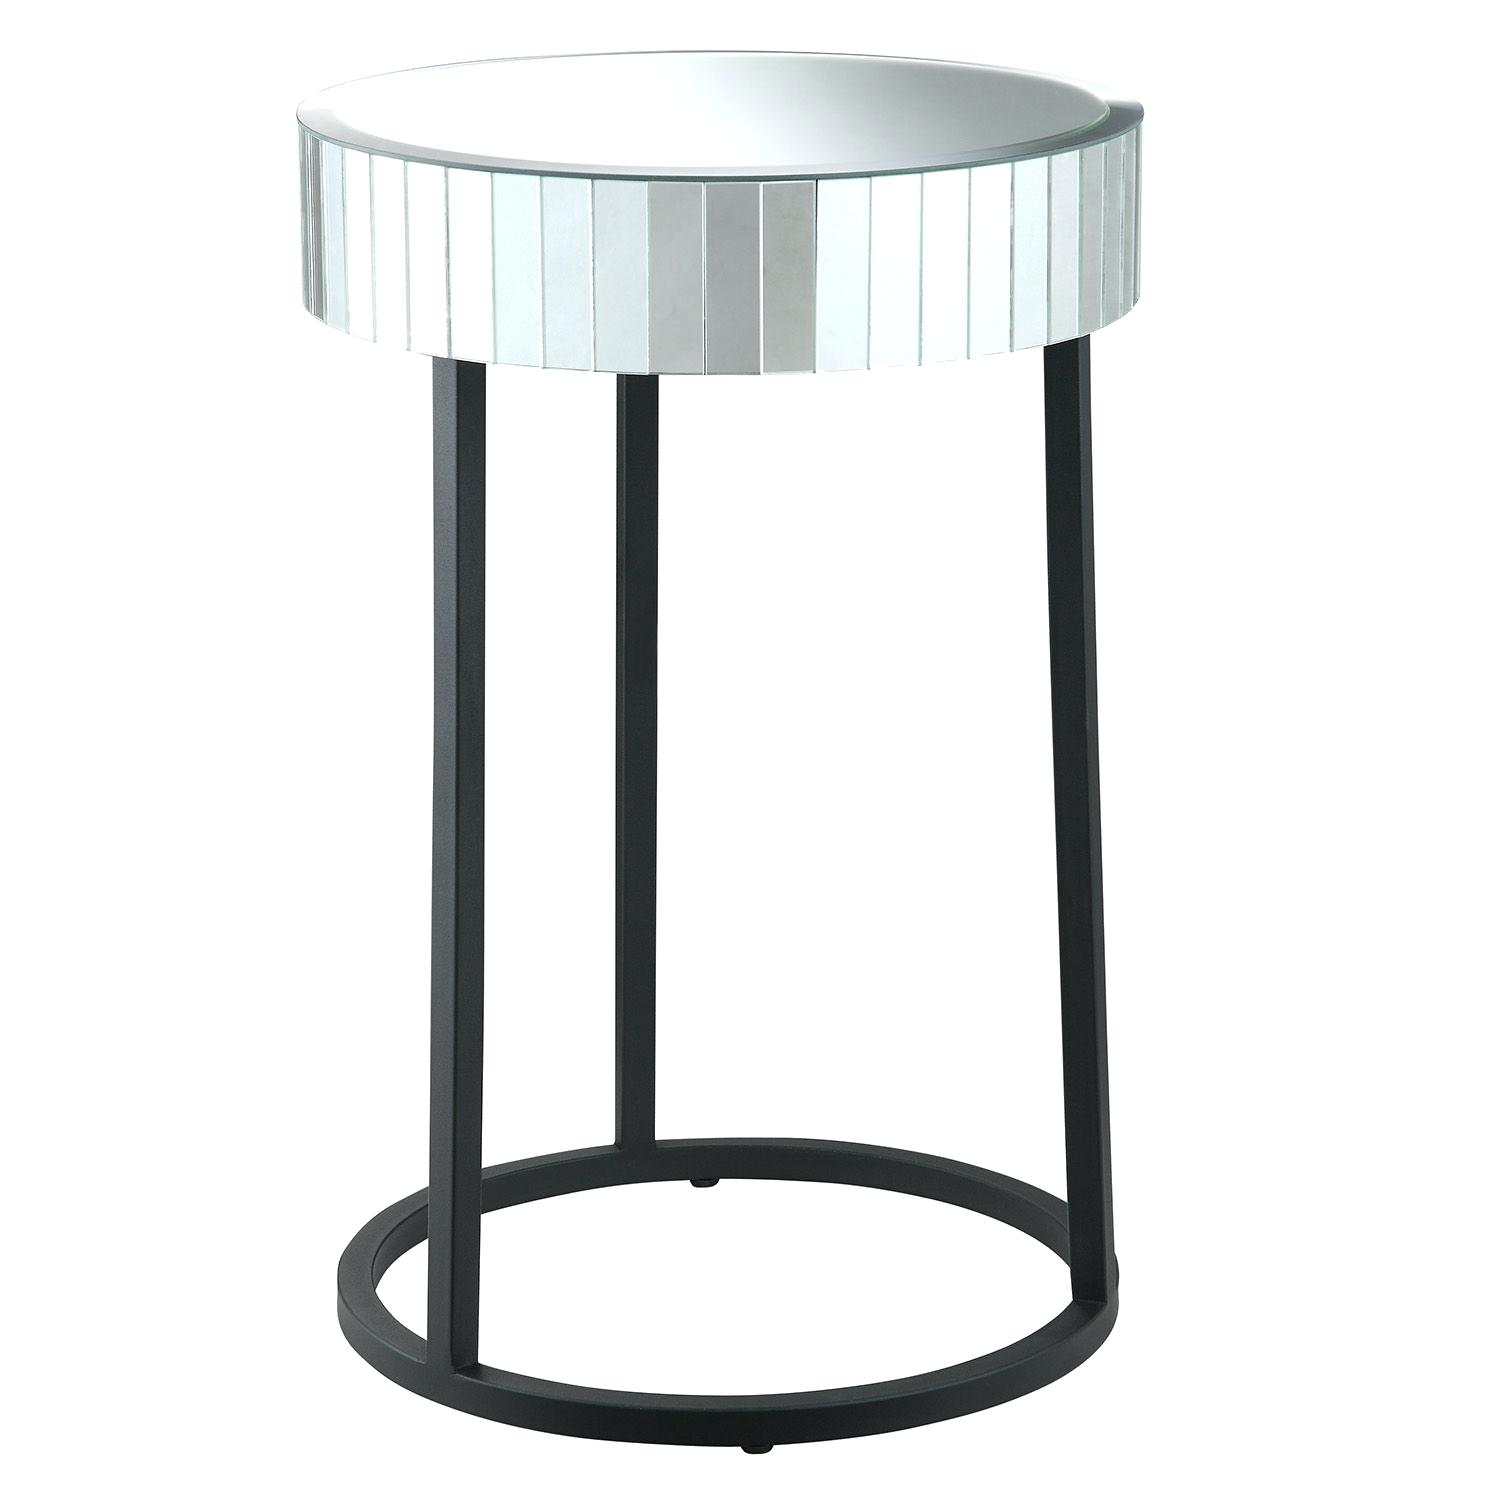 save this item pier accent tables mosaic table lavorochogan info round mirror tile outdoor small couches for spaces mirrored nightstand home goods lamps plus industrial coffee